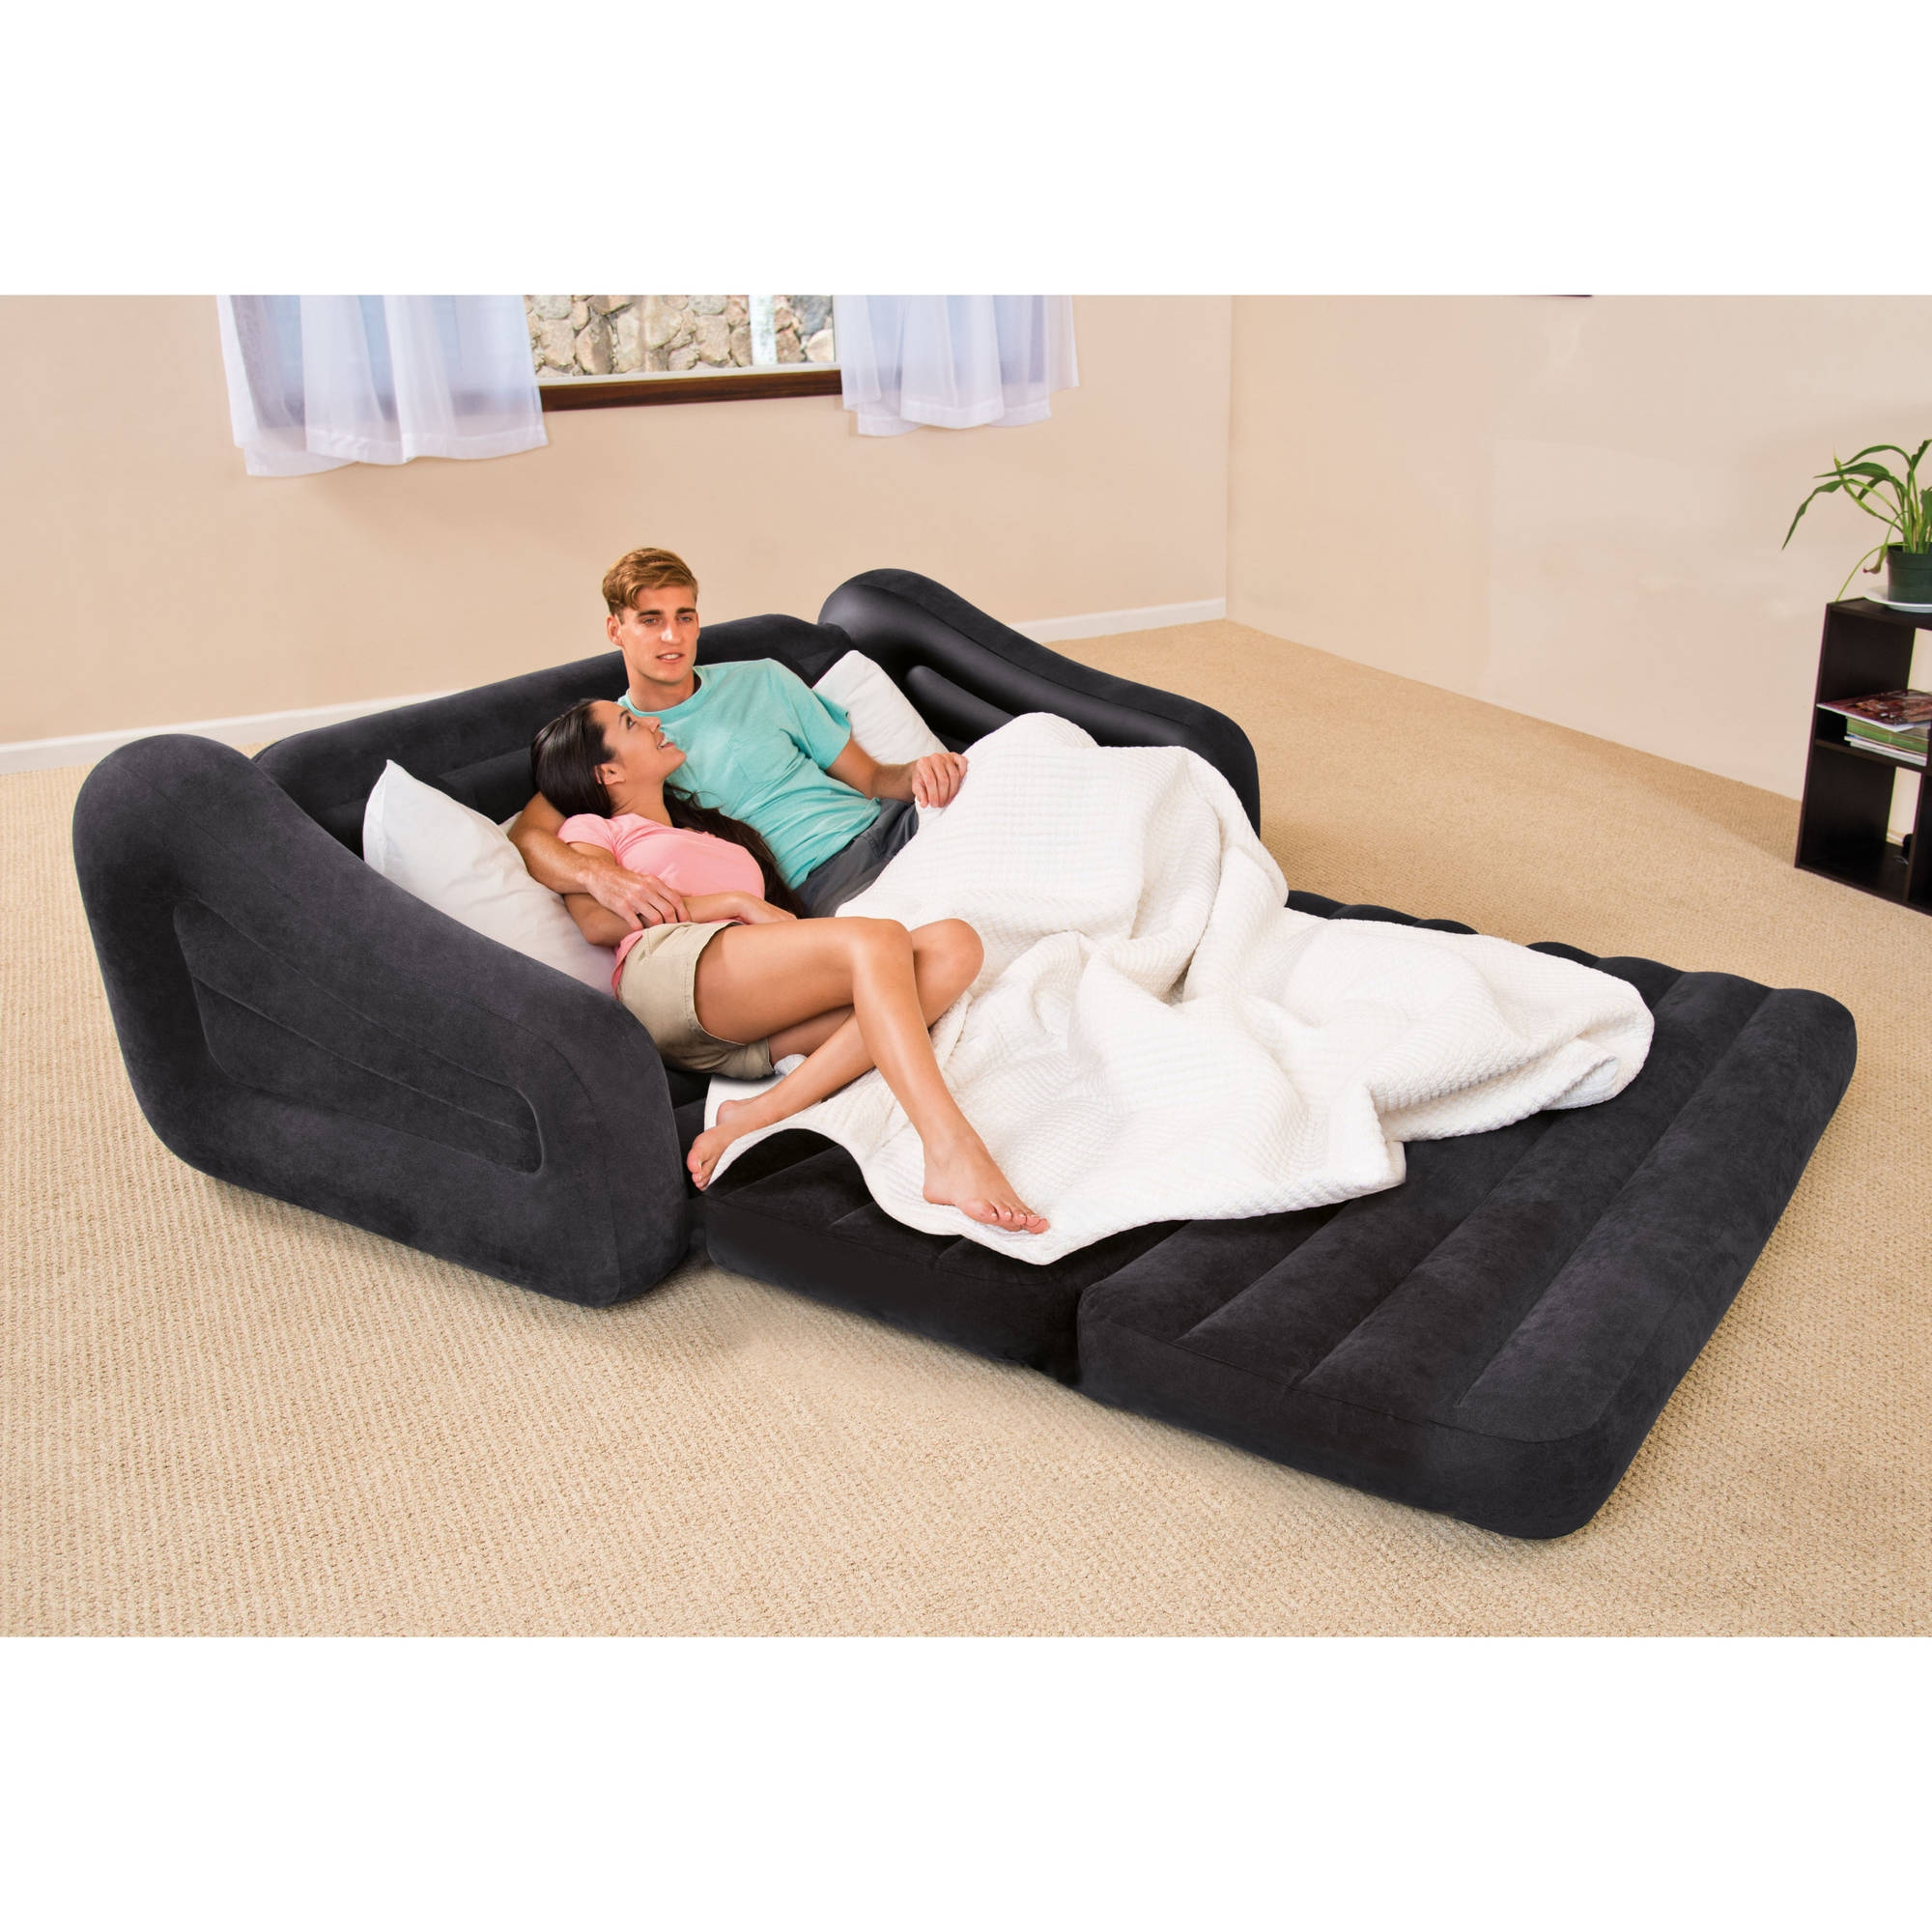 Intex Queen Inflatable Pull Out Sofa Bed Walmart Regarding Pull Out Sofa Chairs (Image 9 of 15)